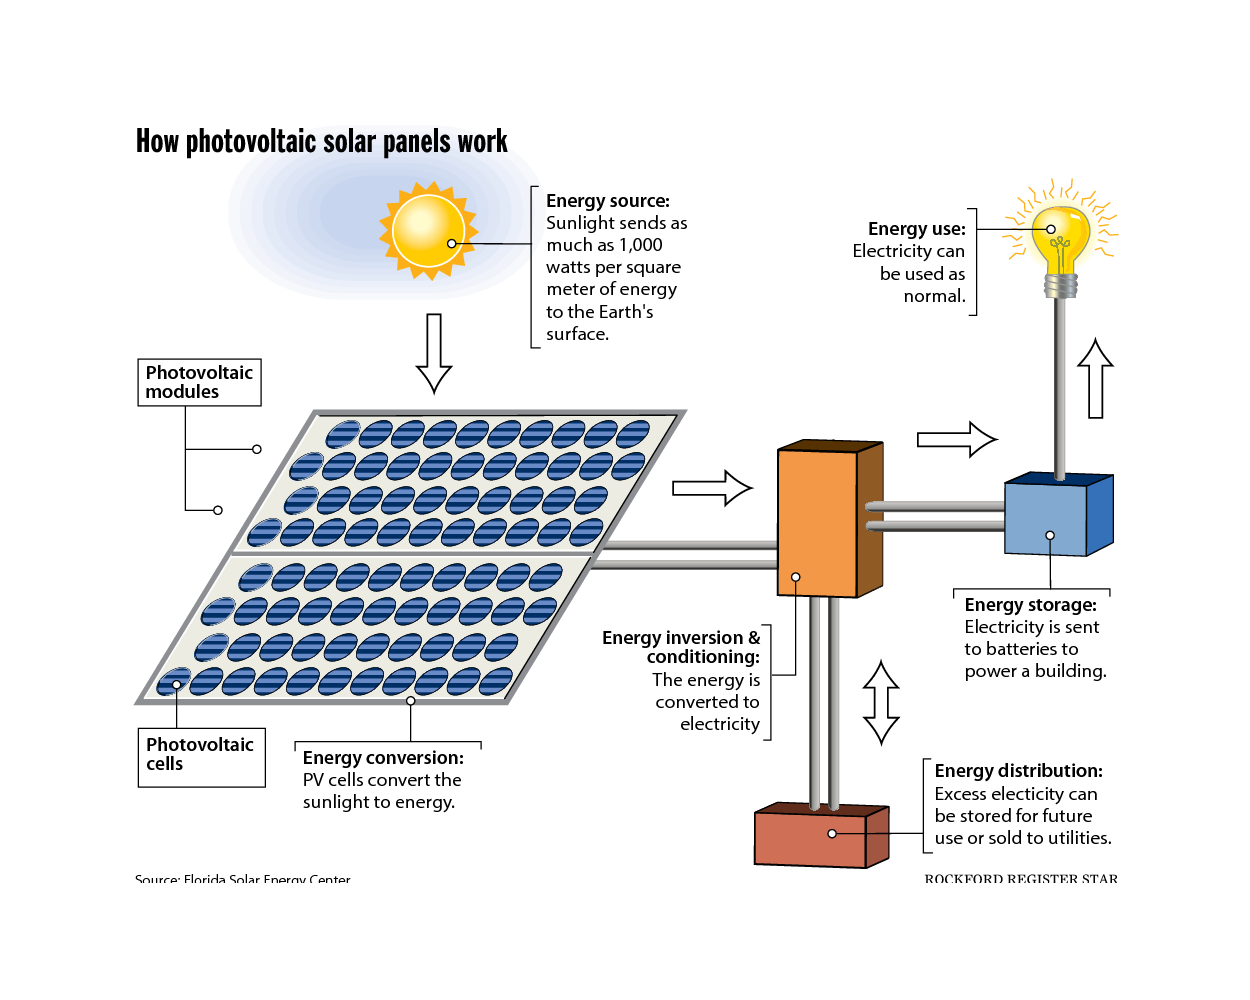 photovoltaic panels diagram google search earthship solar solar panel diagram pdf photovoltaic panels diagram google search [ 1250 x 1000 Pixel ]